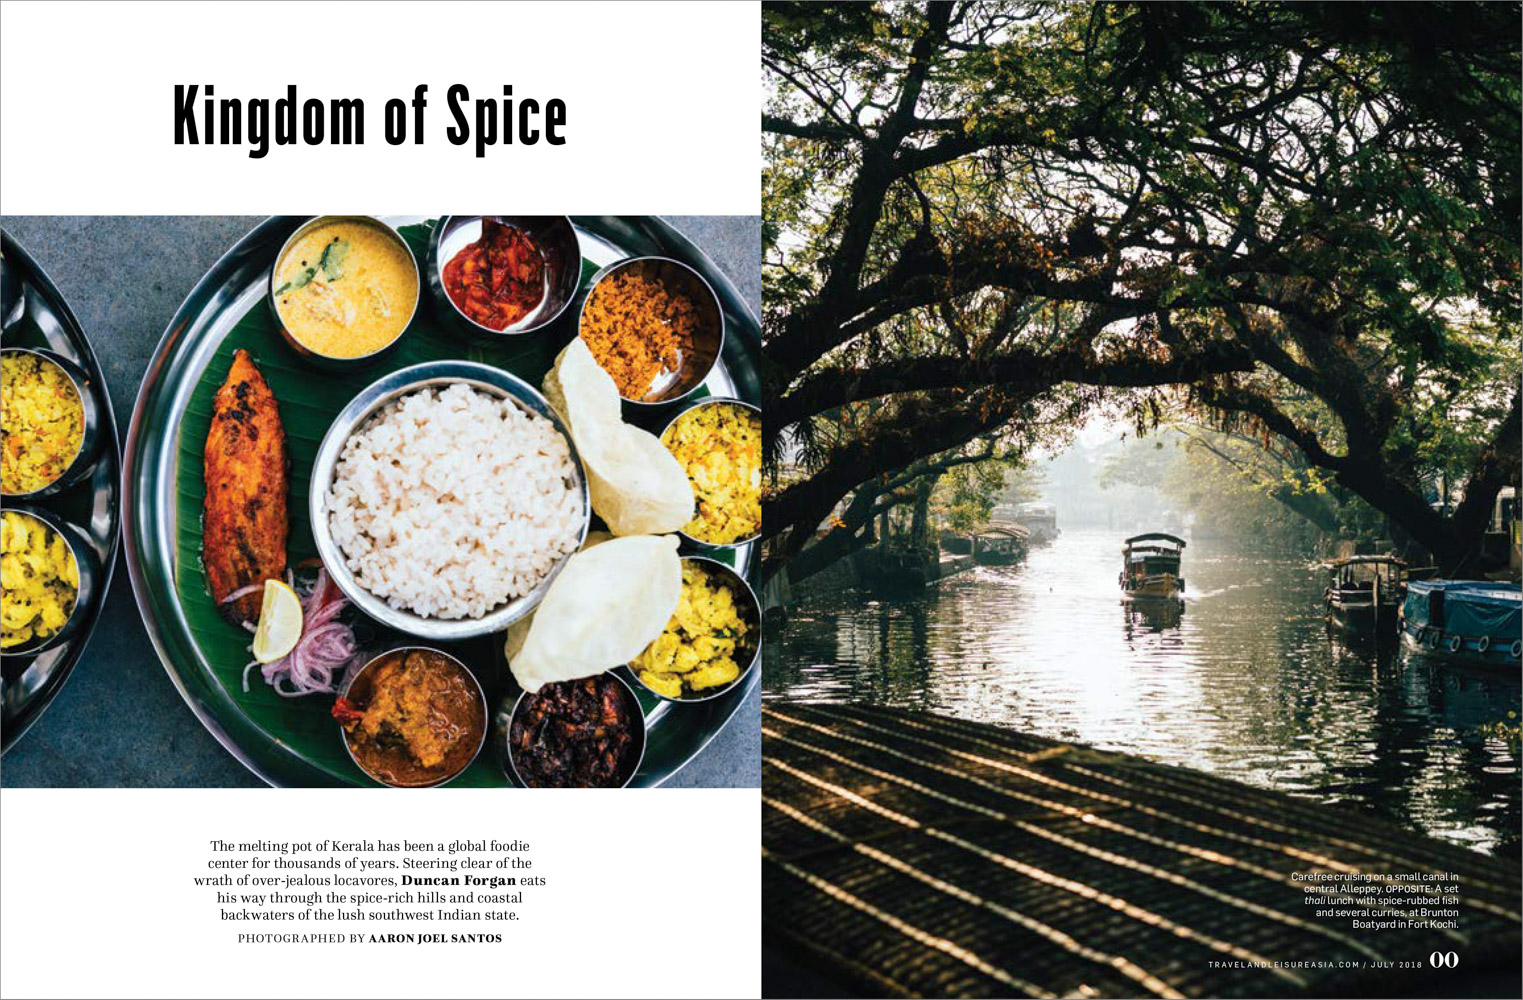 A food tour through the verdant lands of India's southwest state.